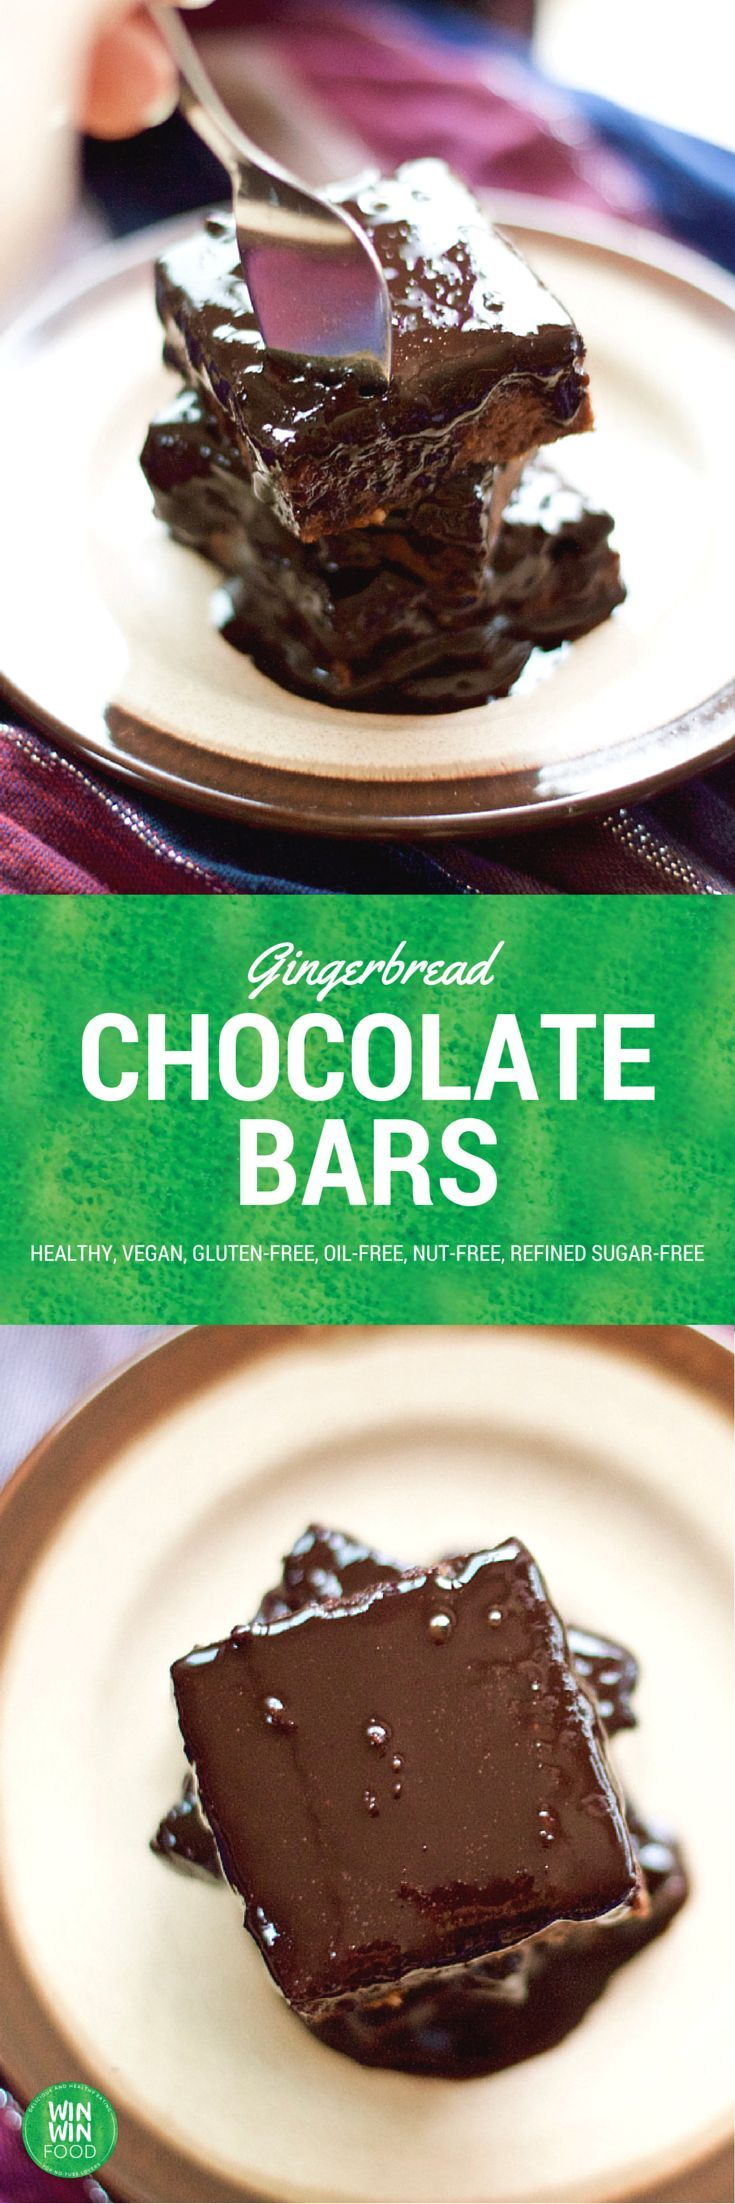 Gingerbread Chocolate Bars | WIN-WINFOOD.com #healthy #vegan #glutenfree